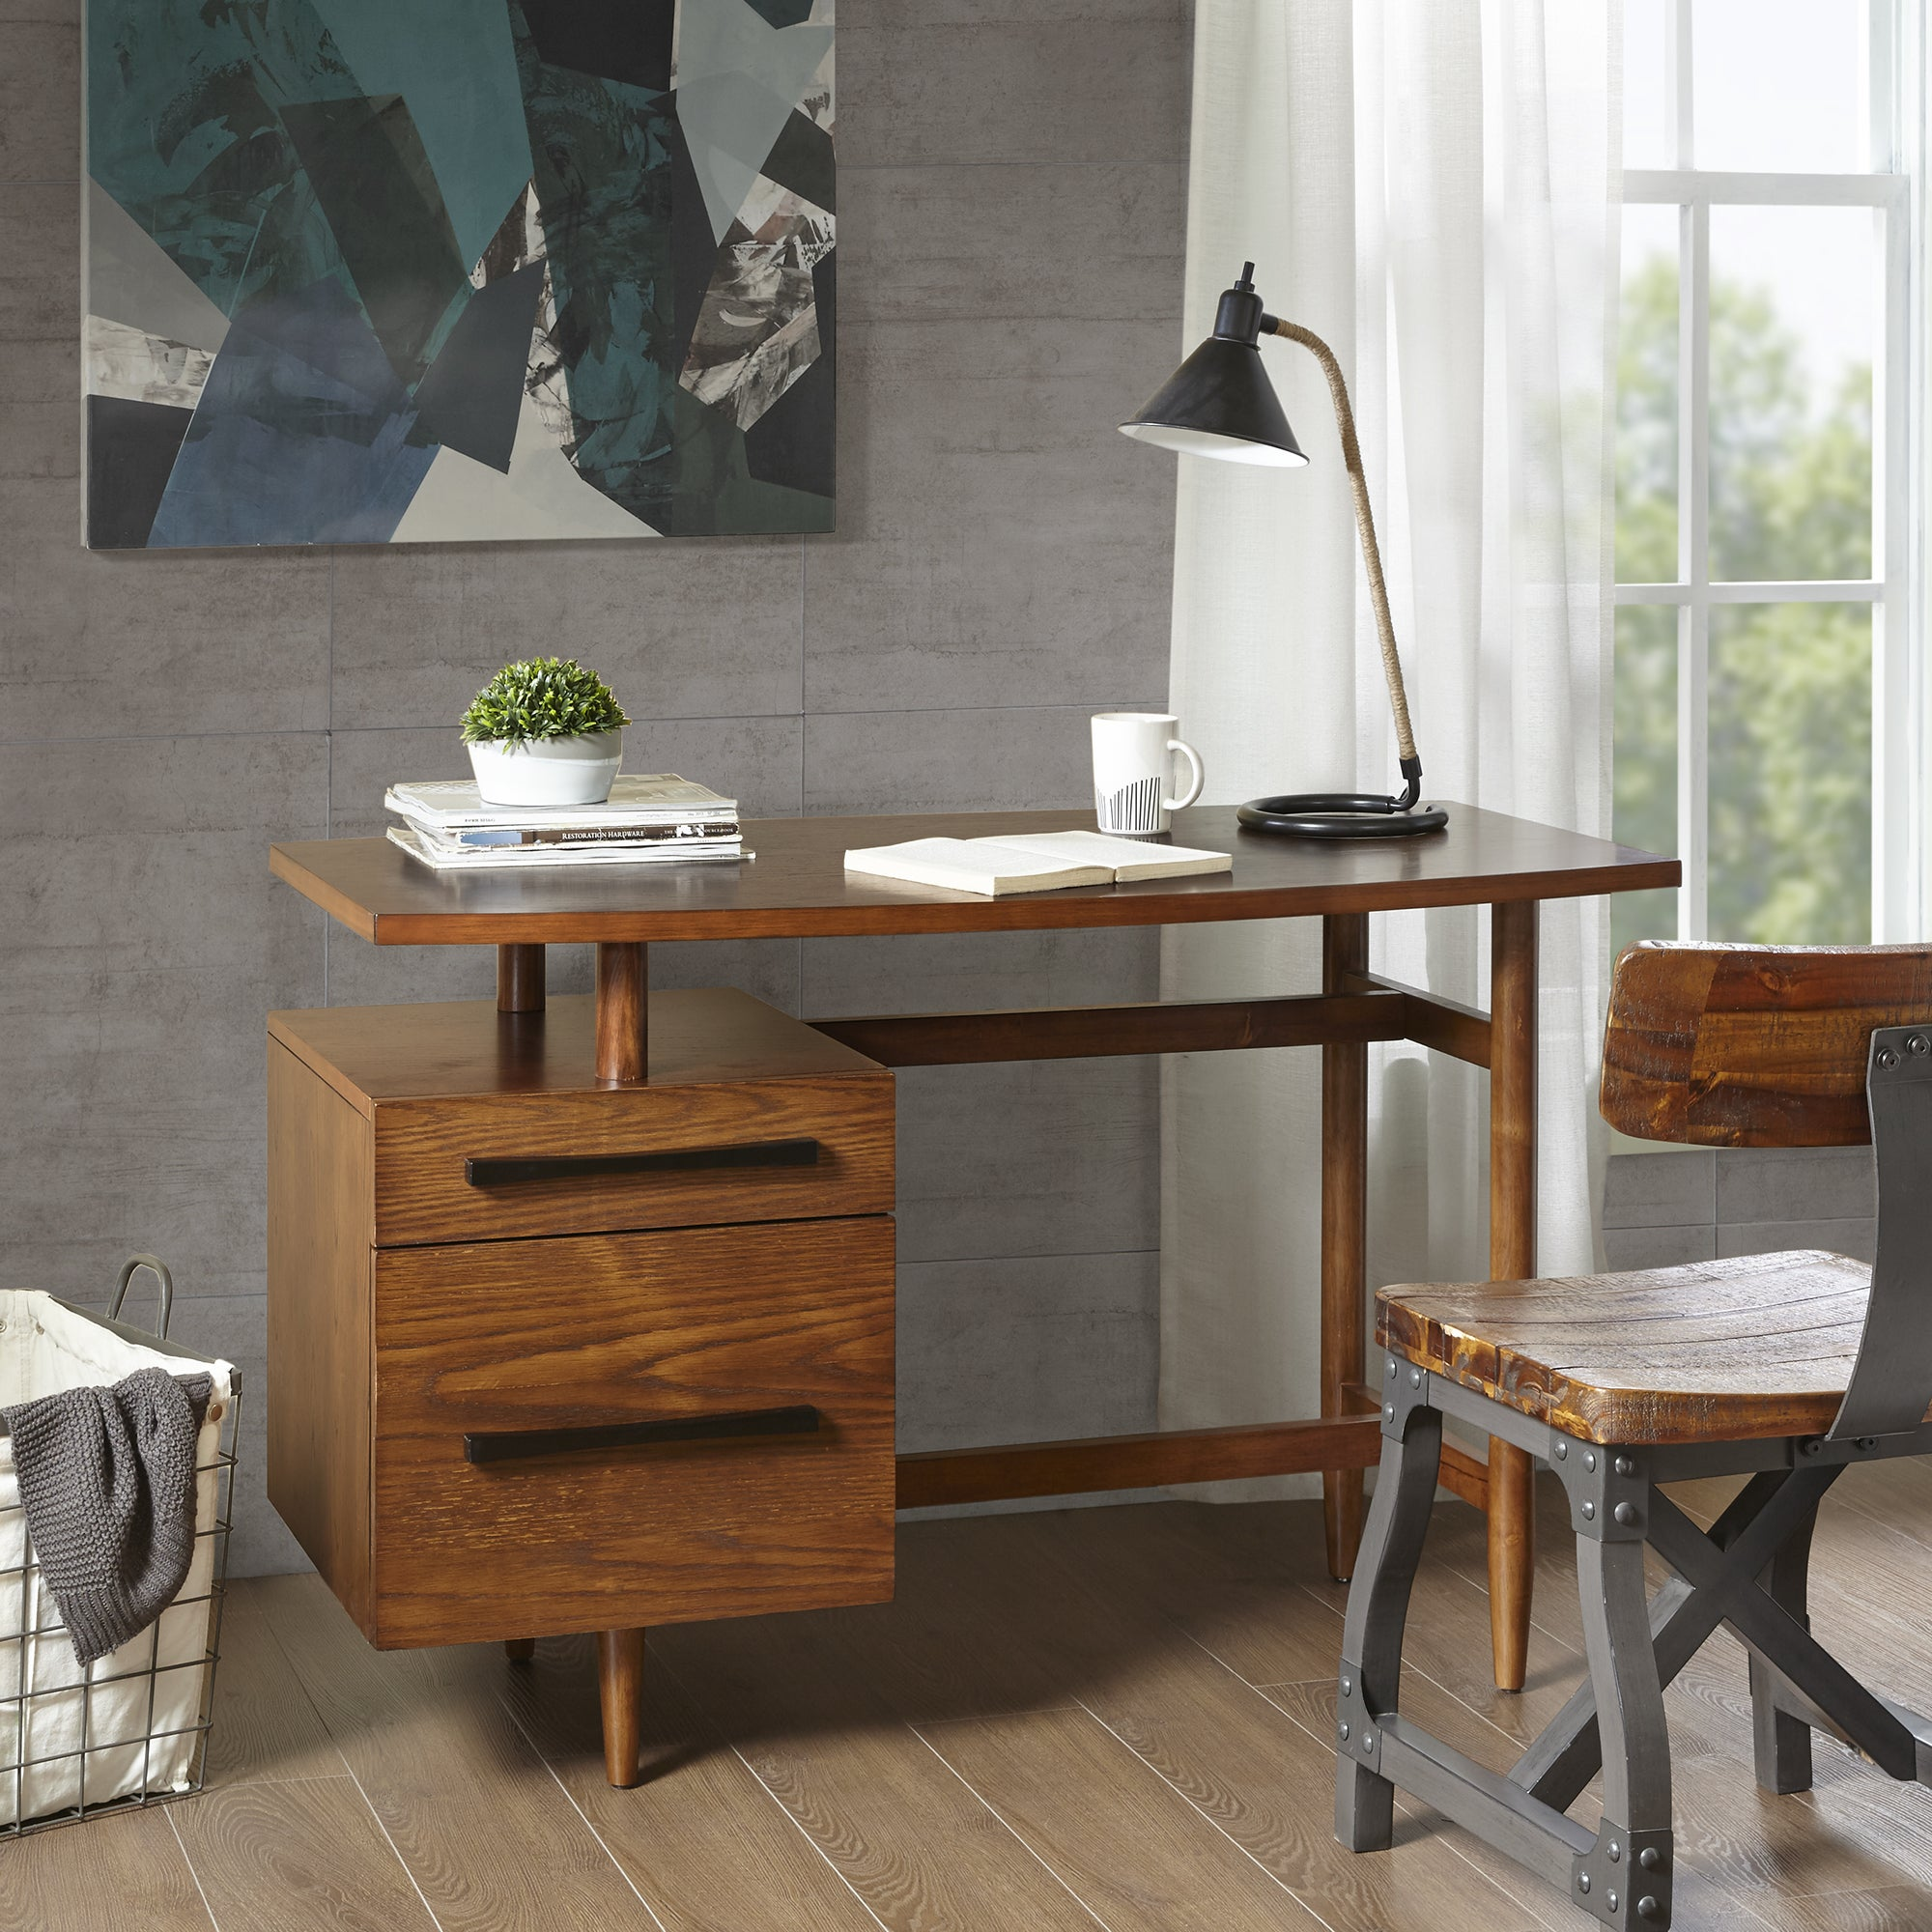 awesome chic desks grey oviedo of cocoa desk cool office leather themed dining images aviation aviator impressive photo chairs furniture chair on size by inspired collection painted restoration hardware from full mamak griffith for swivel